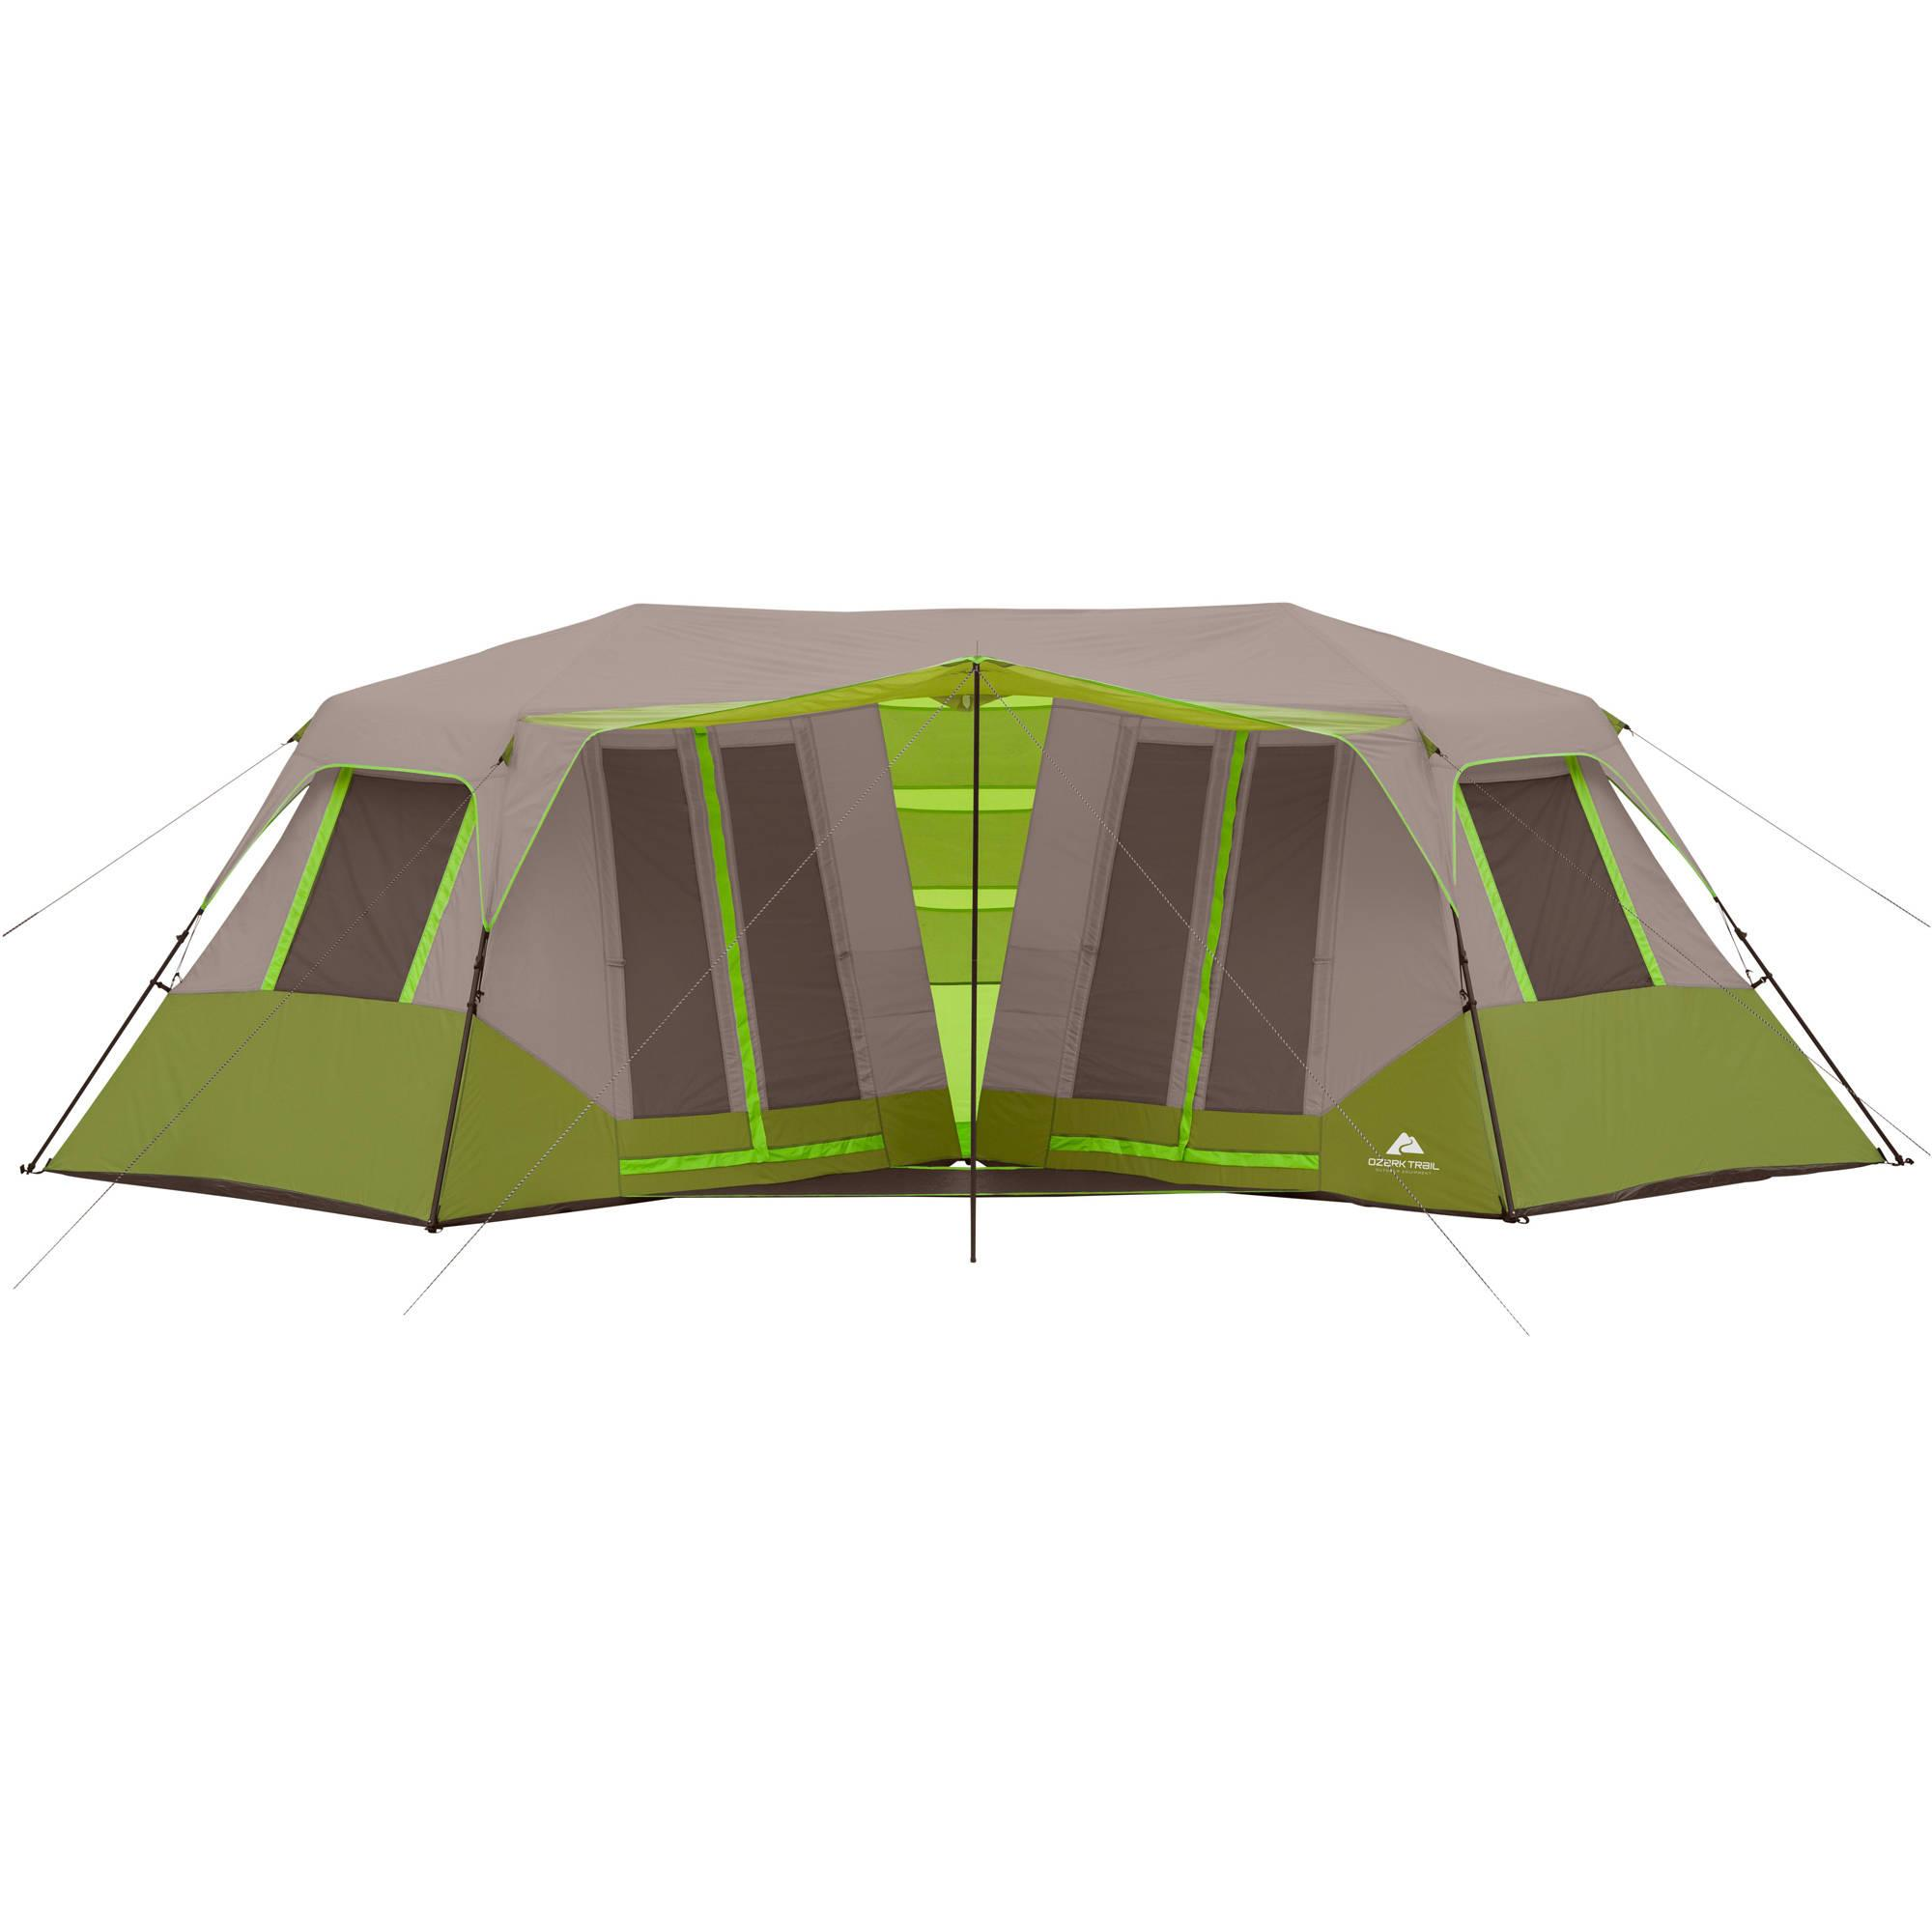 Ozark trail 8 person instant double villa cabin tent for Tent cottage